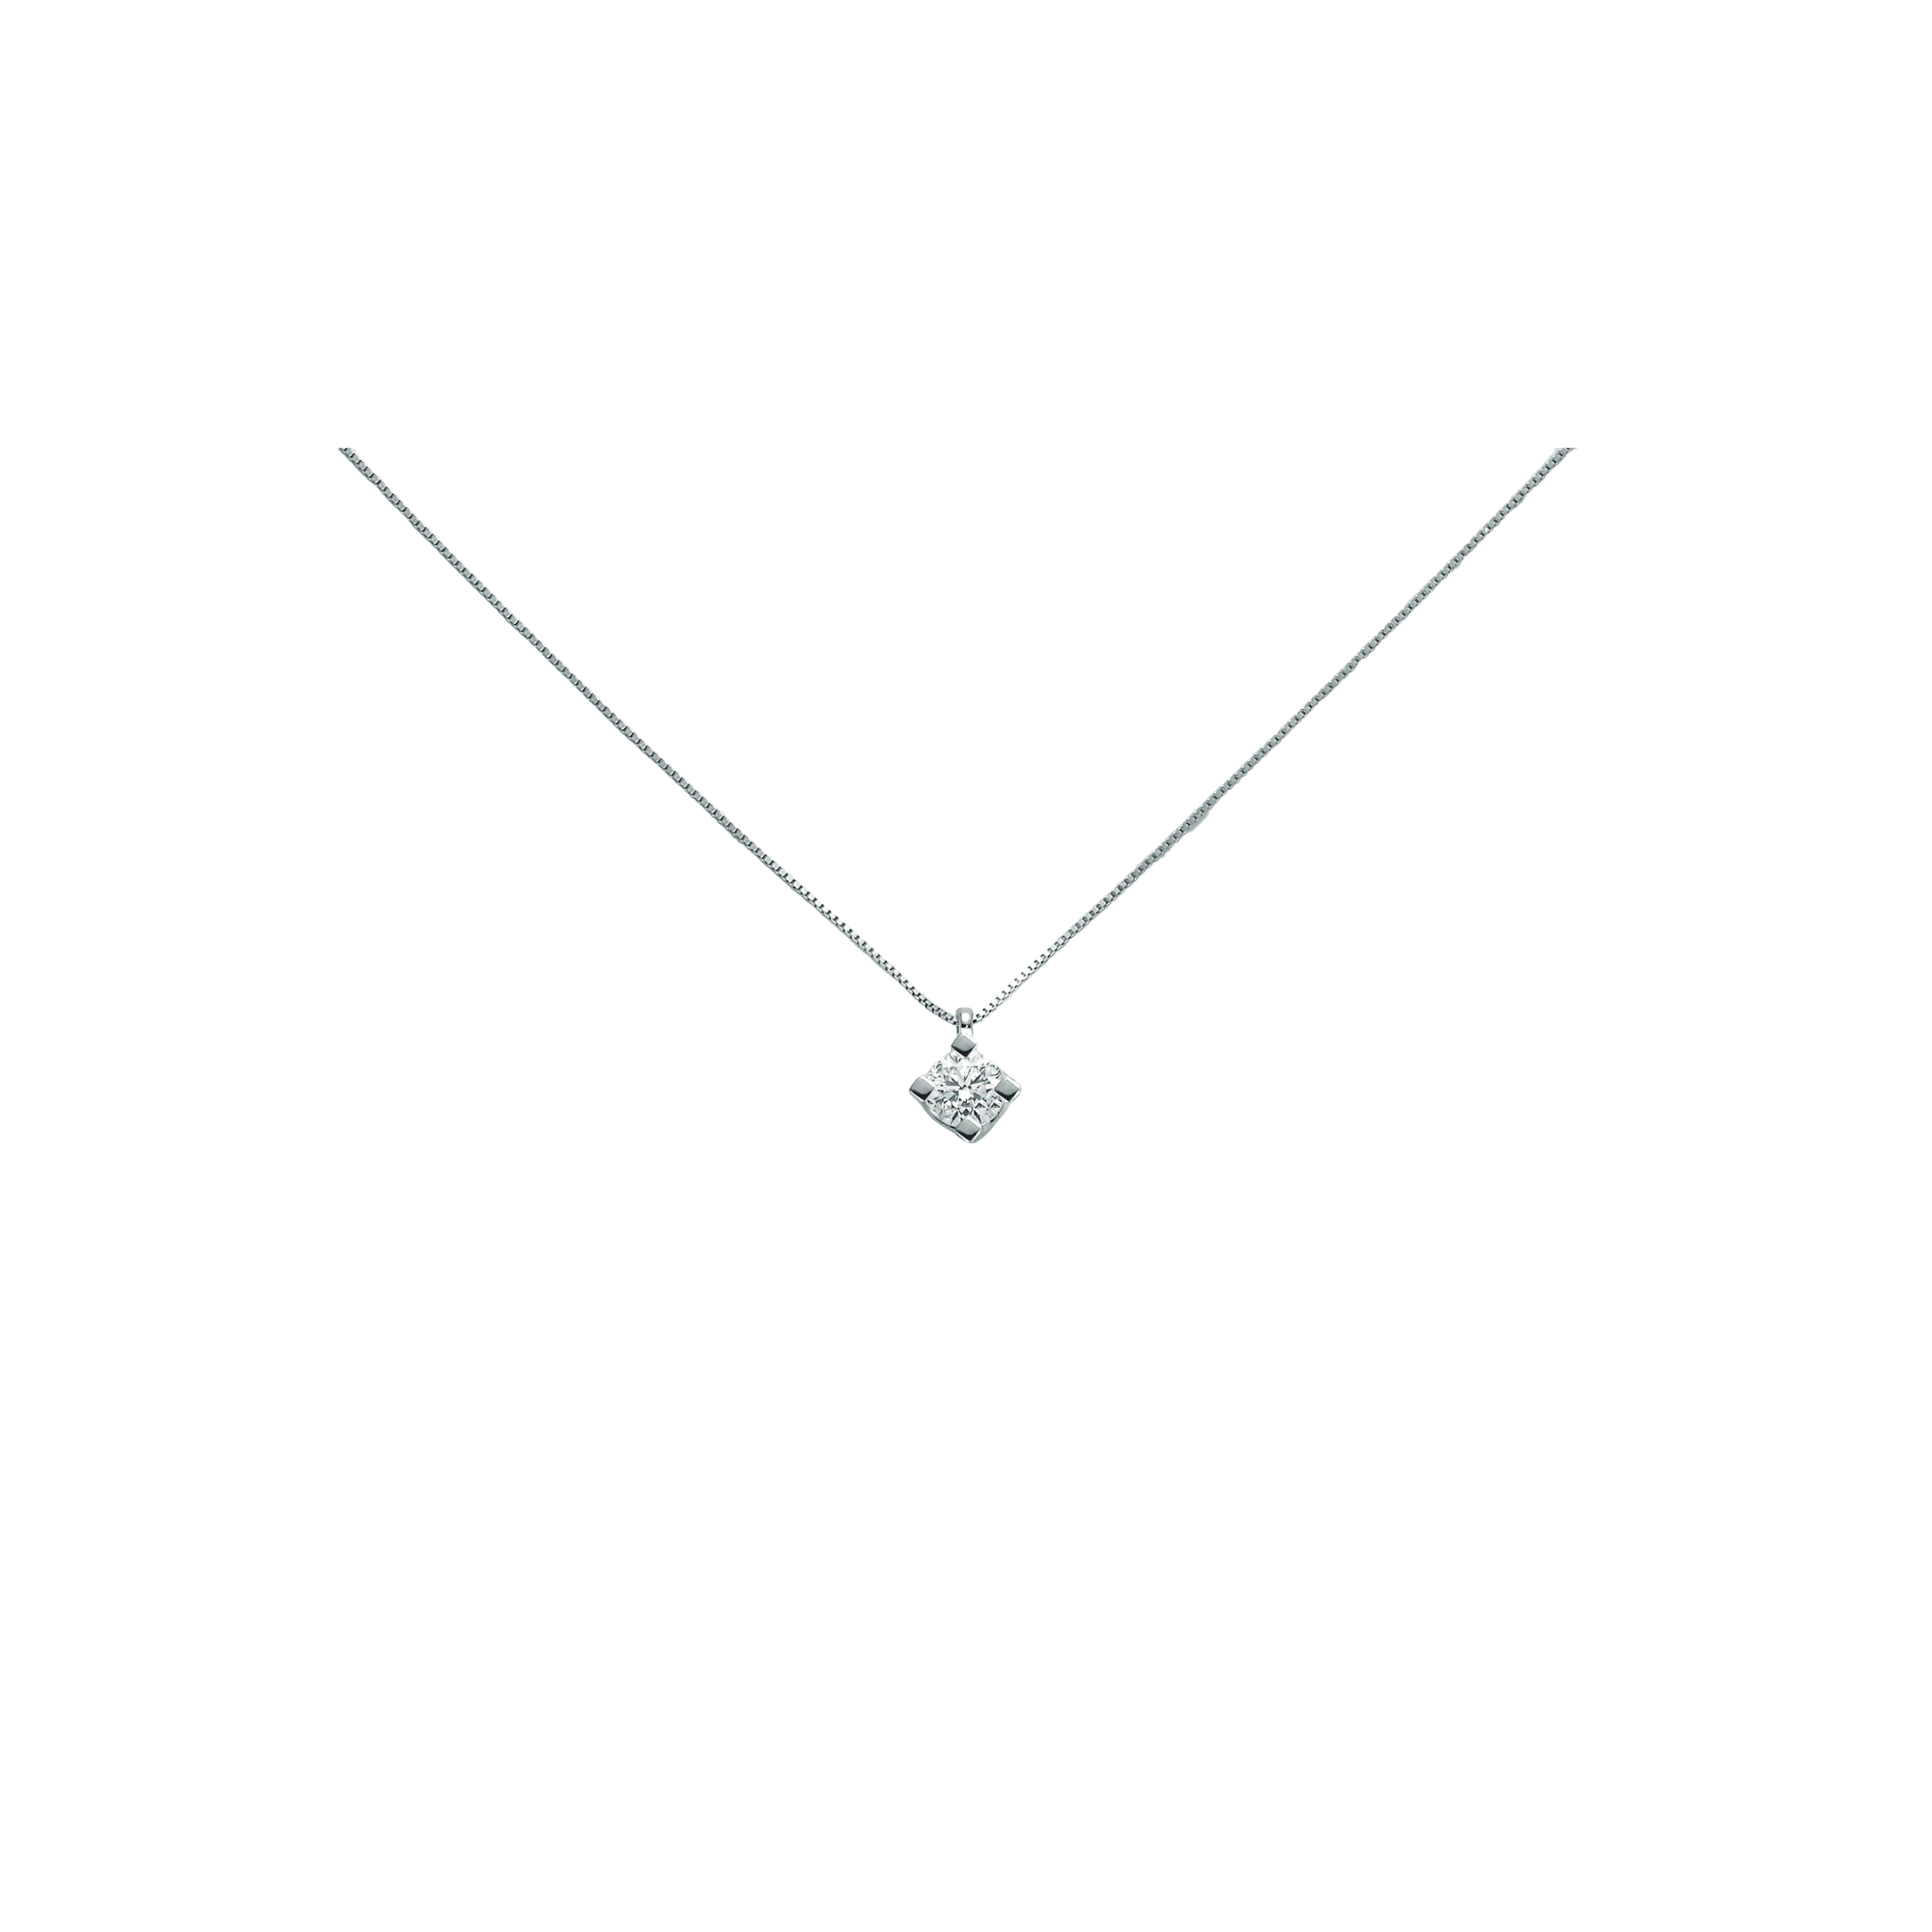 Miluna Necklace - CLD5065-018G7